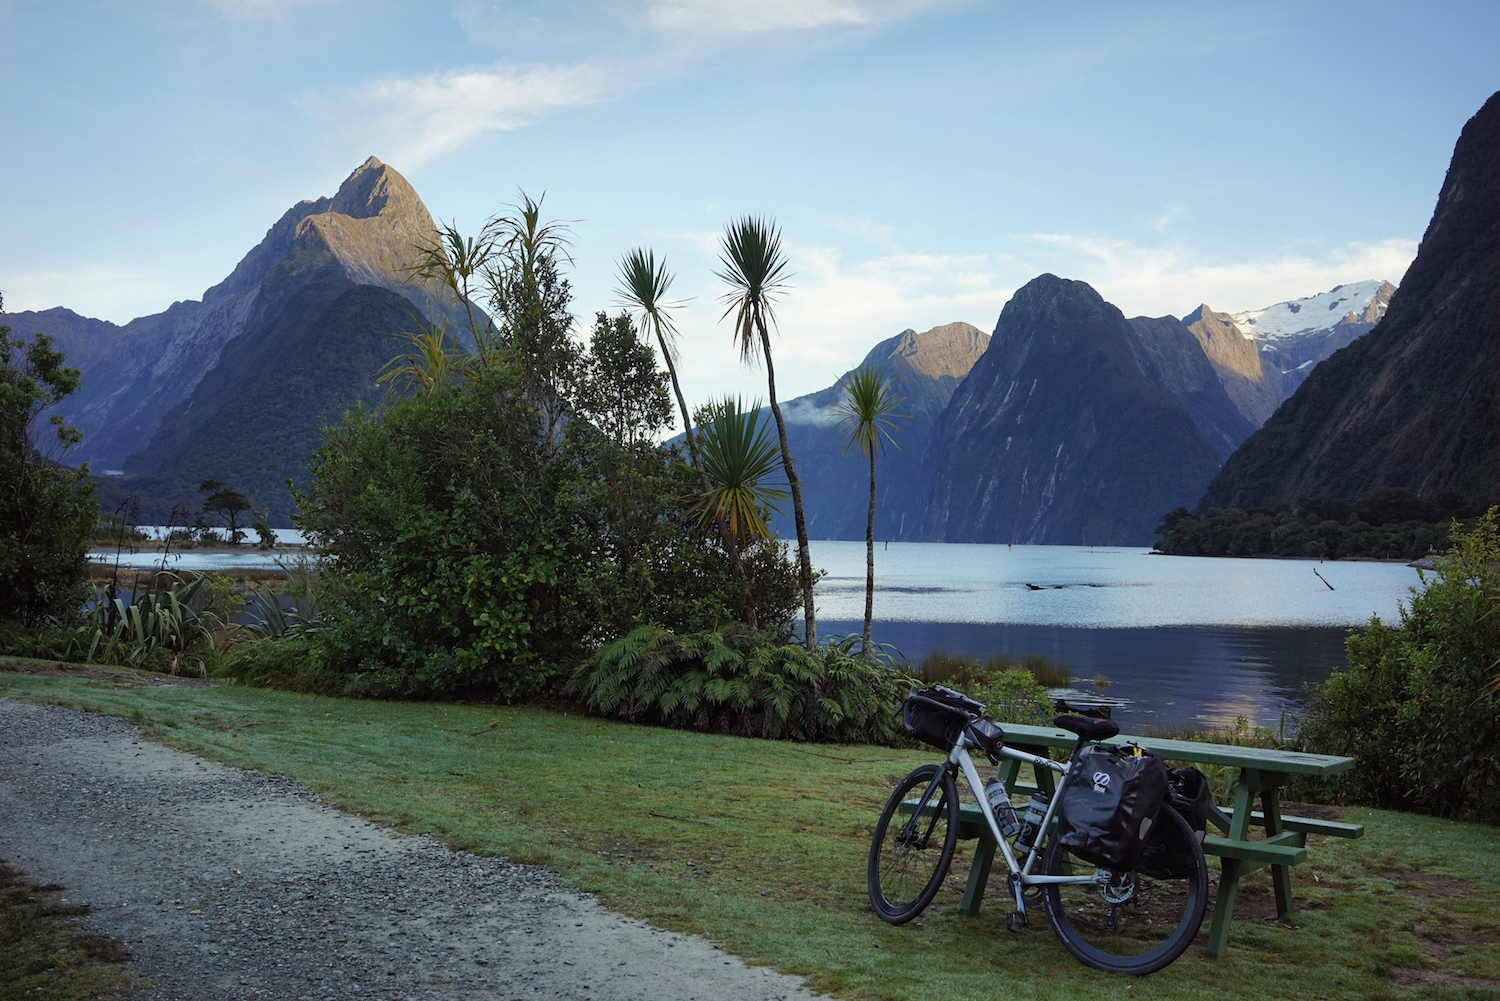 2017 04 10 06 59 08 2 - New Zealand by bike? Why not?!